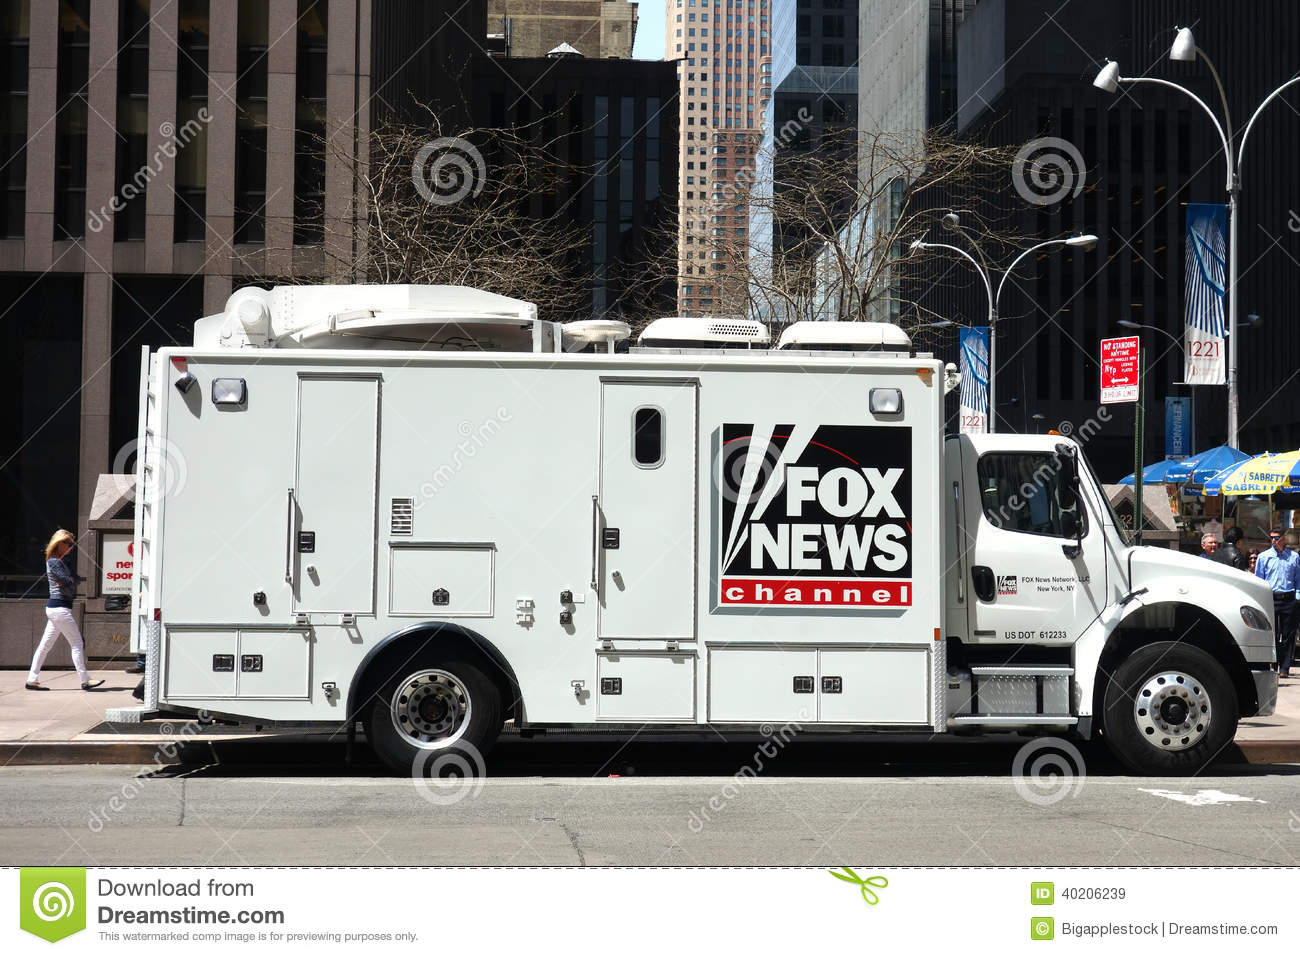 Fox News Channel Truck Editorial Stock Image - Image: 40206239